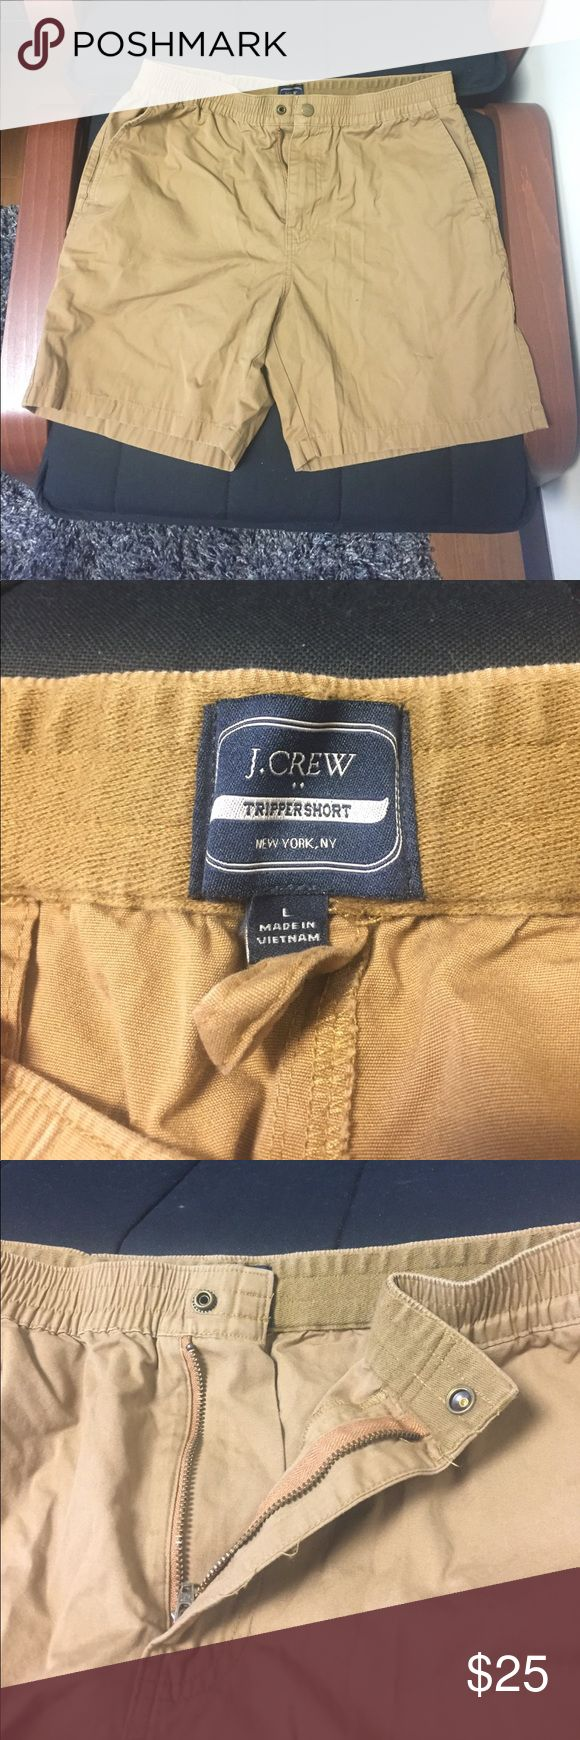 Men's J.Crew khaki shorts PERFECT CONDITION 🚨🚨 These shorts are perfect for the khaki look without the hassle of wearing a belt. Elastic waist fits snug around the waist. Men's large ❗️great deal on these men's khaki shorts ❕ J.Crew Factory Shorts